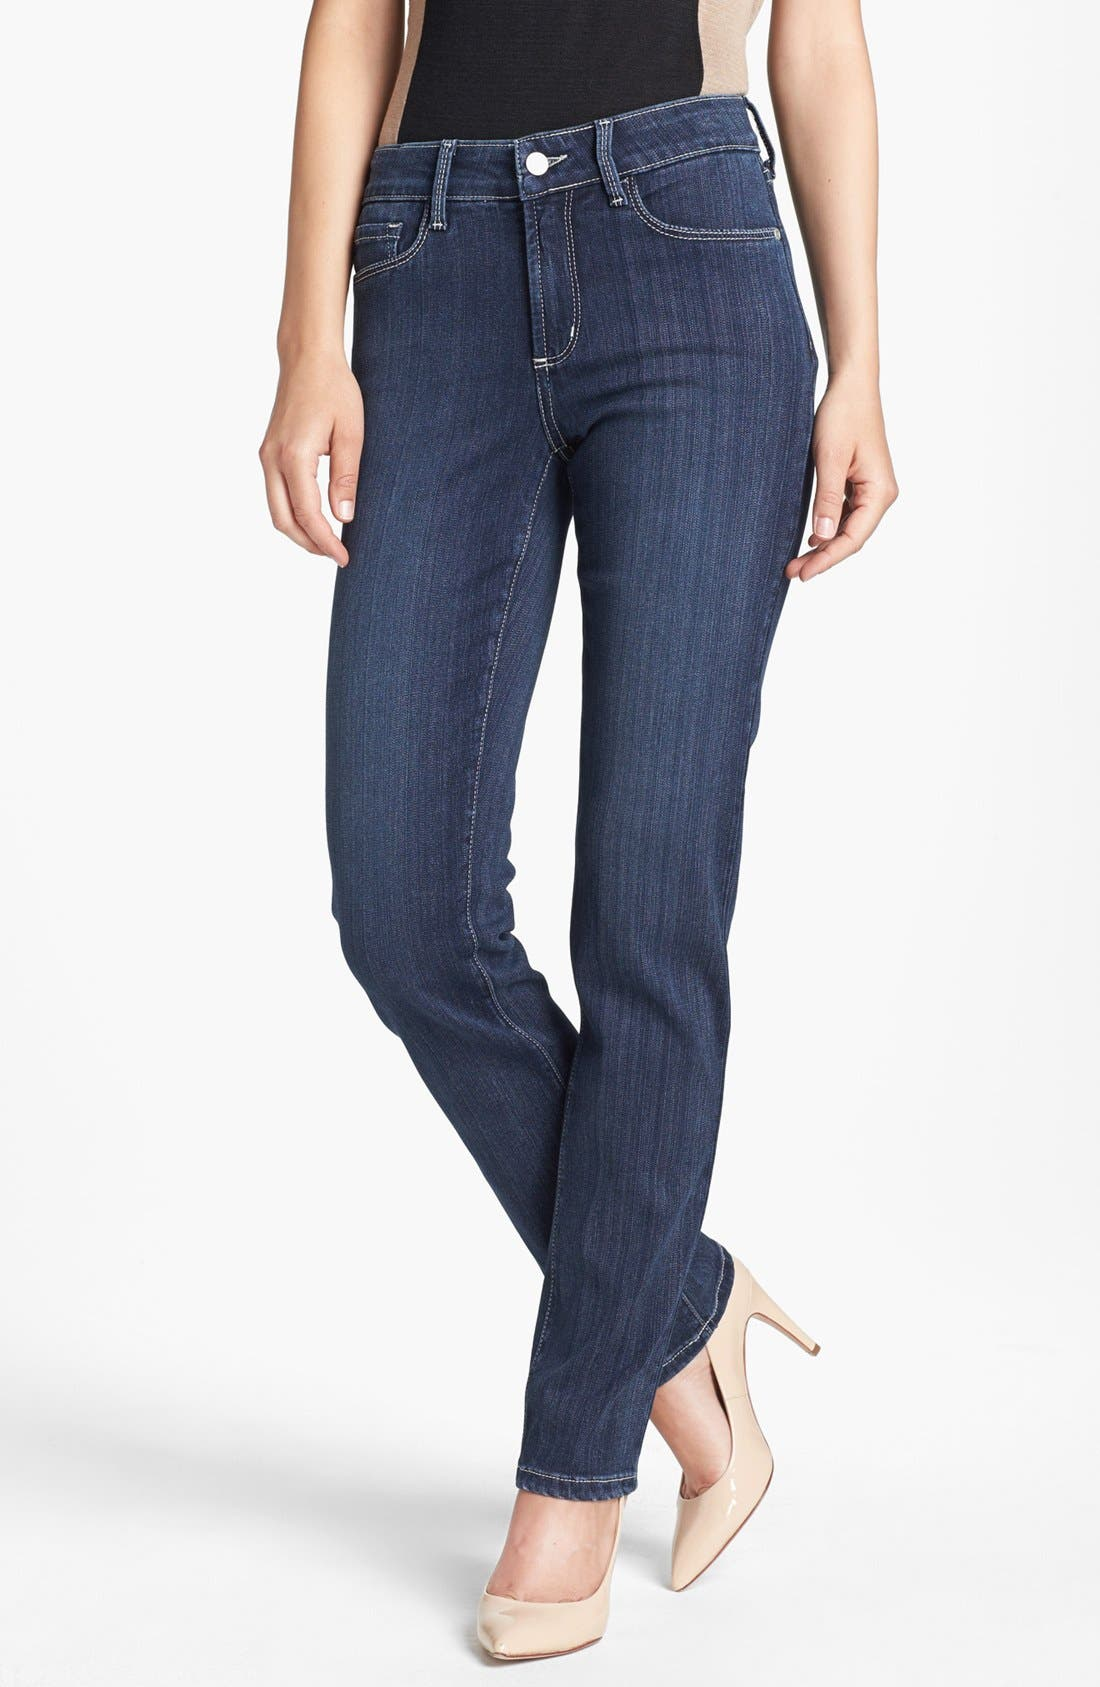 Main Image - NYDJ 'Sheri' Stretch Skinny Jeans (Regular & Petite)